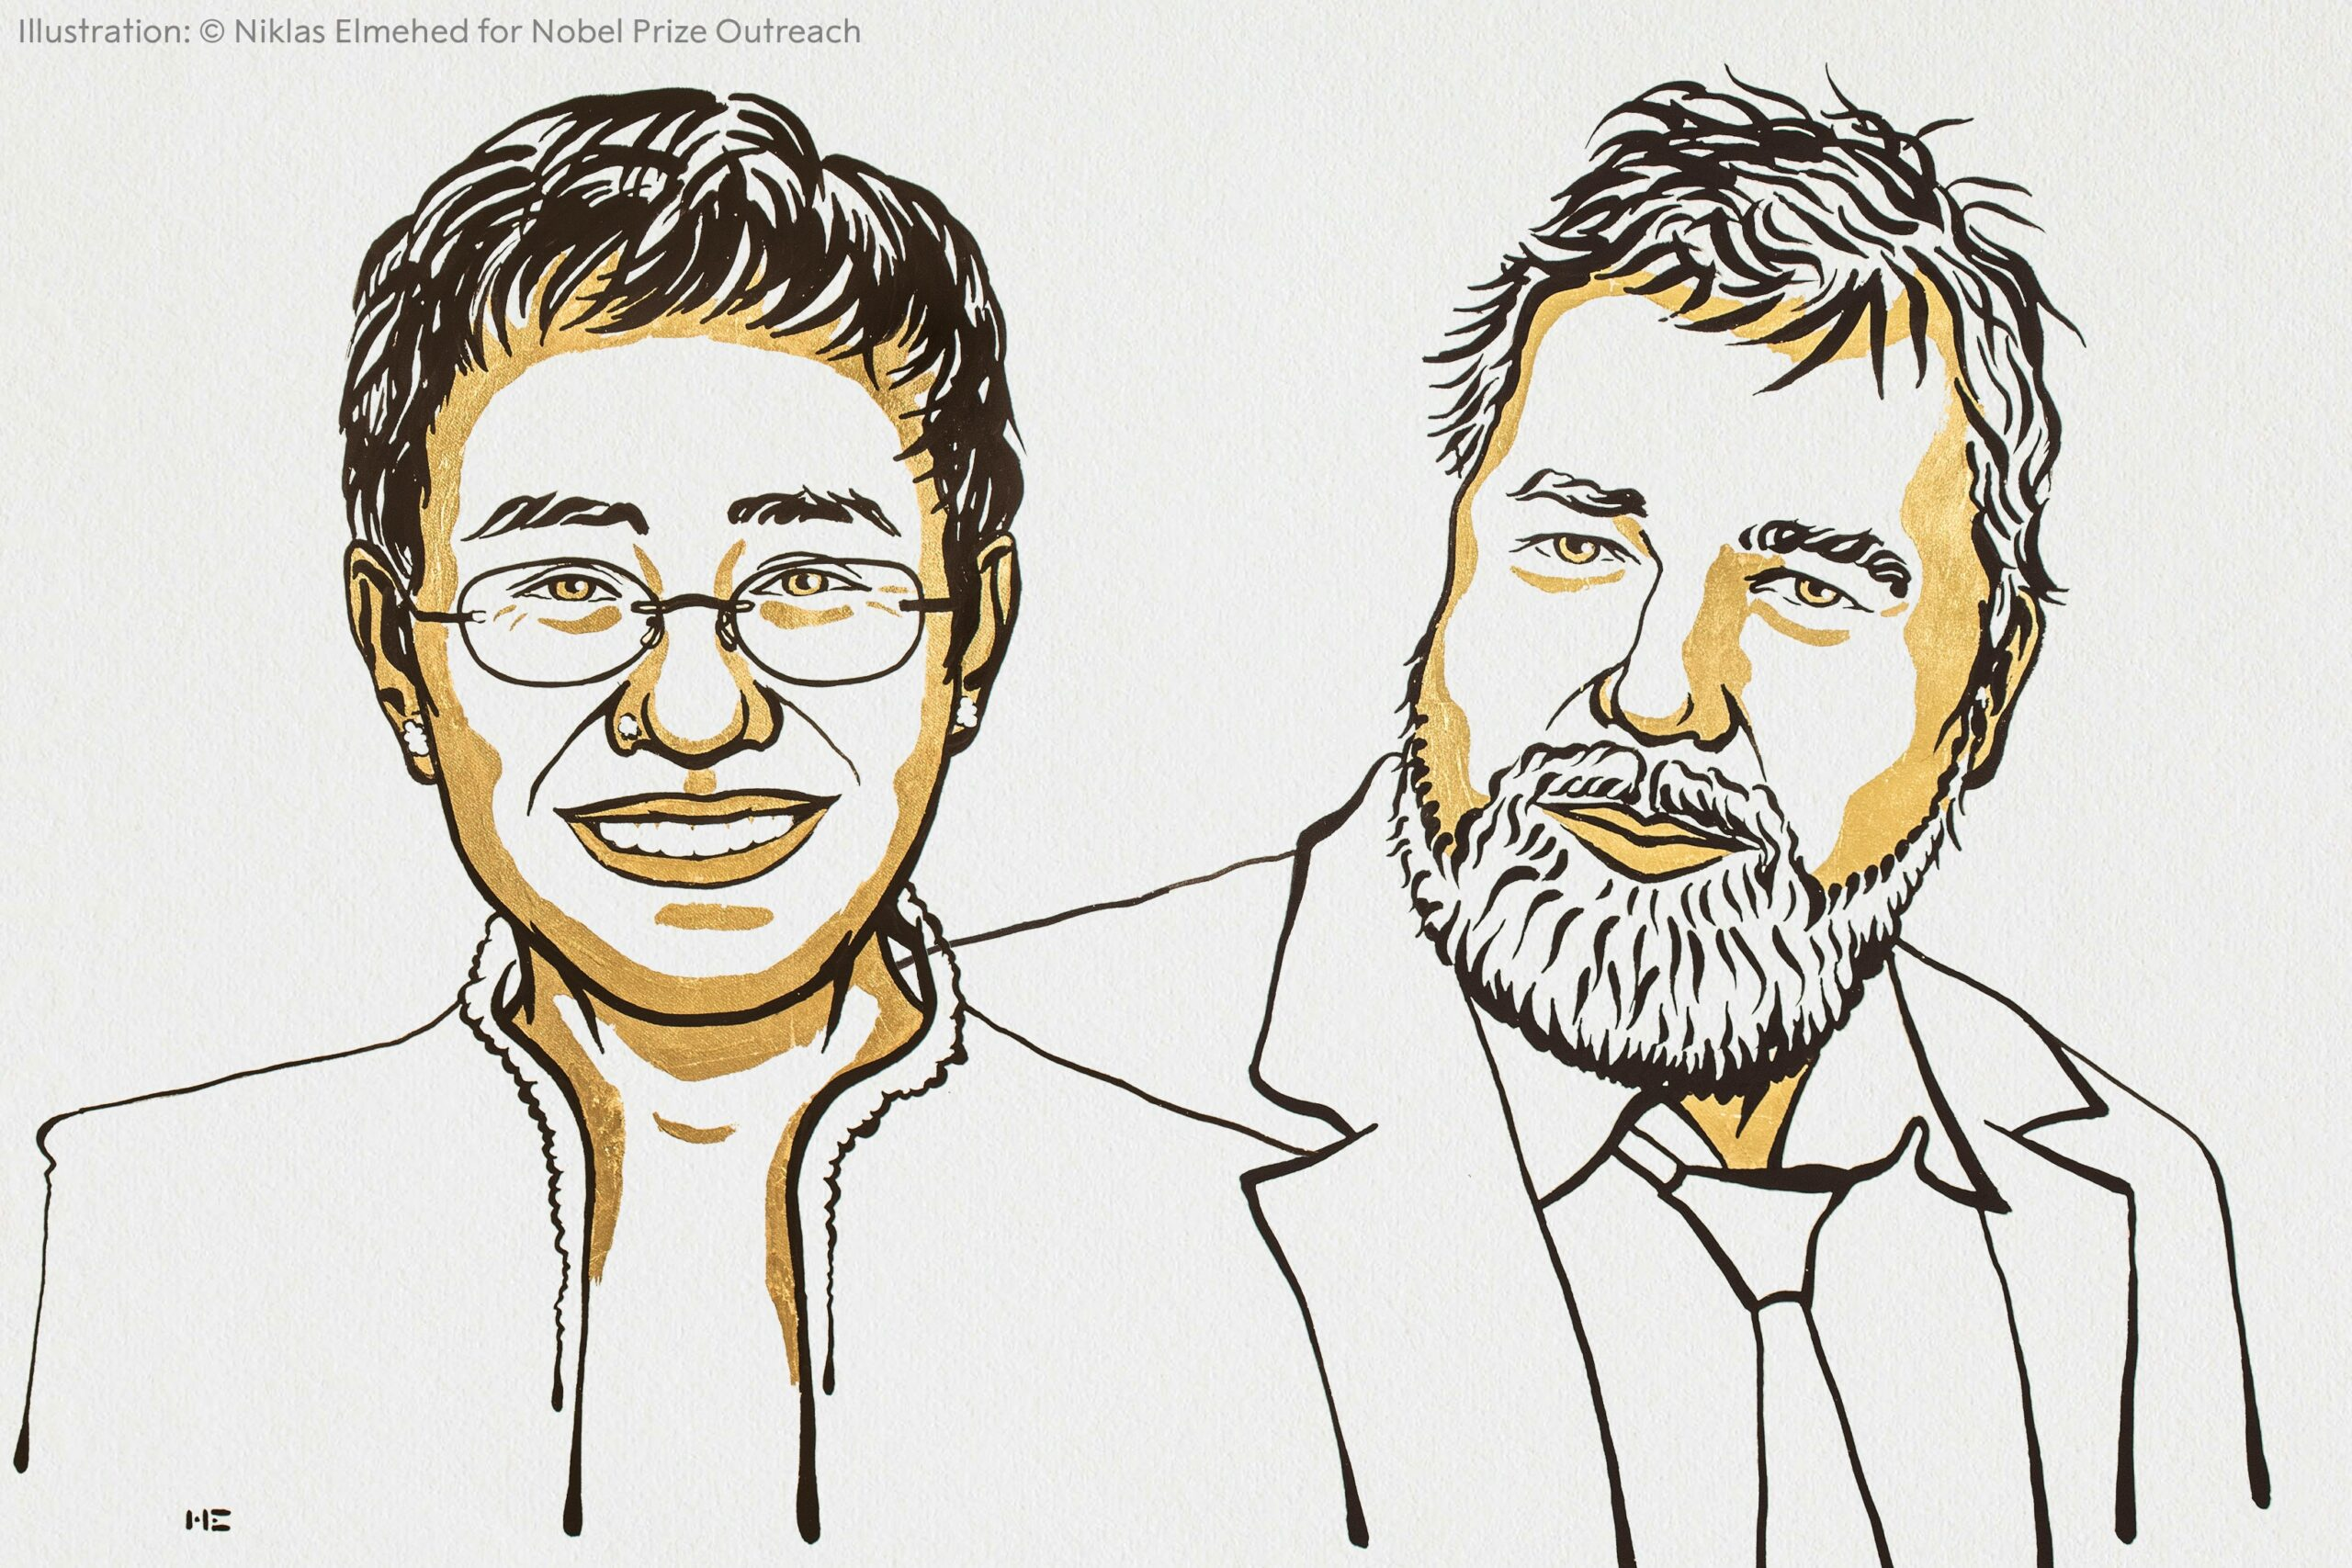 Line drawing of Maria Ressa and Dmitry Muratov